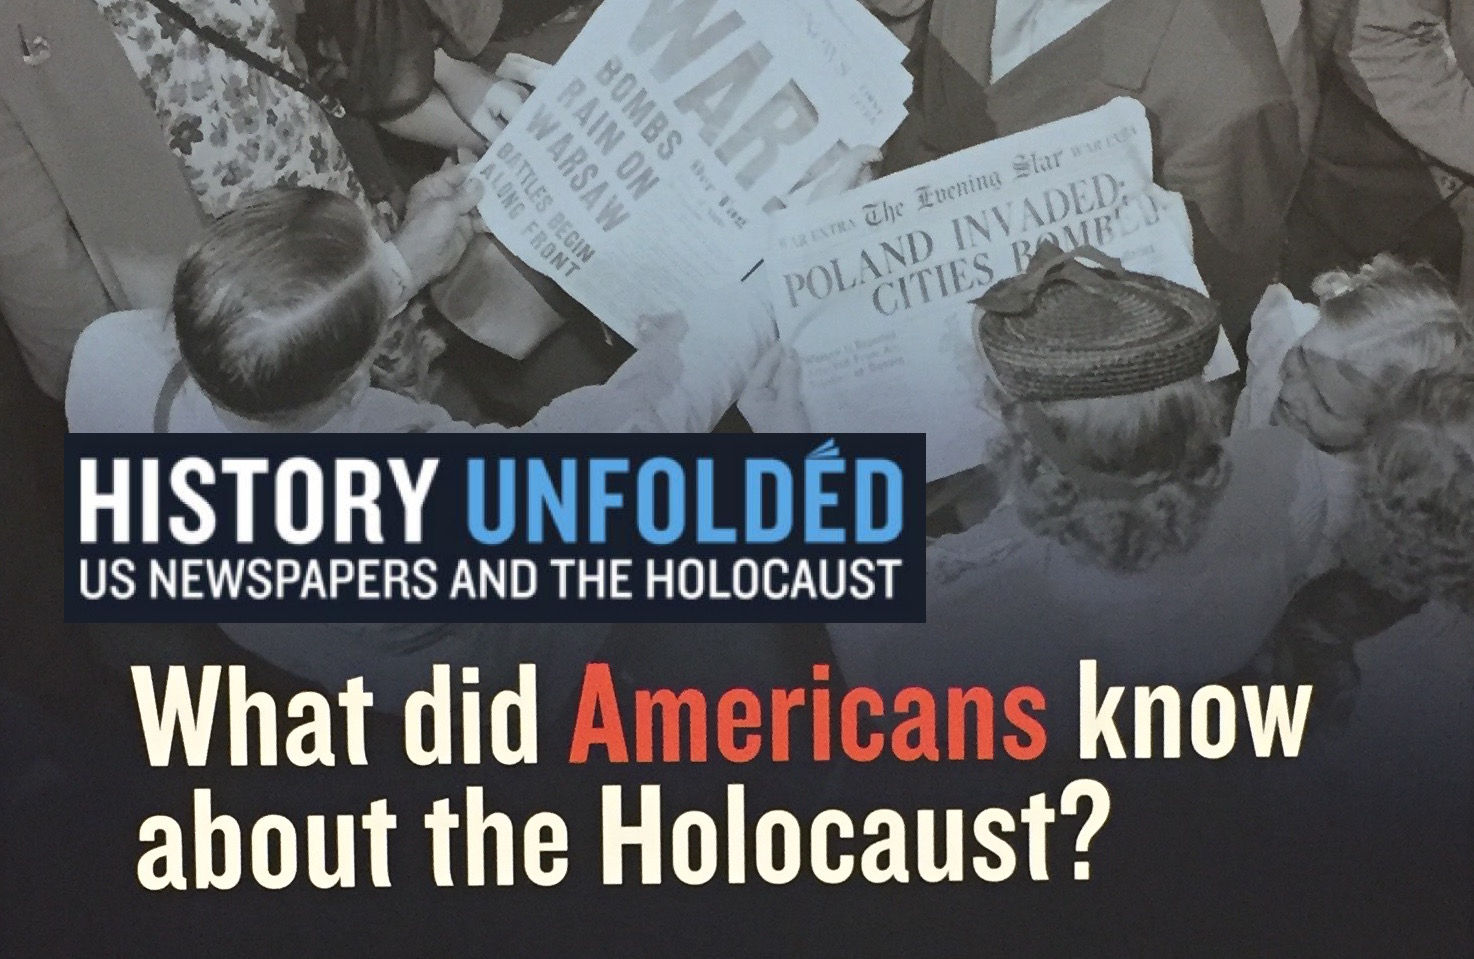 Episode 037 The History Unfolded Project and What Americans Knew About The Holocaust